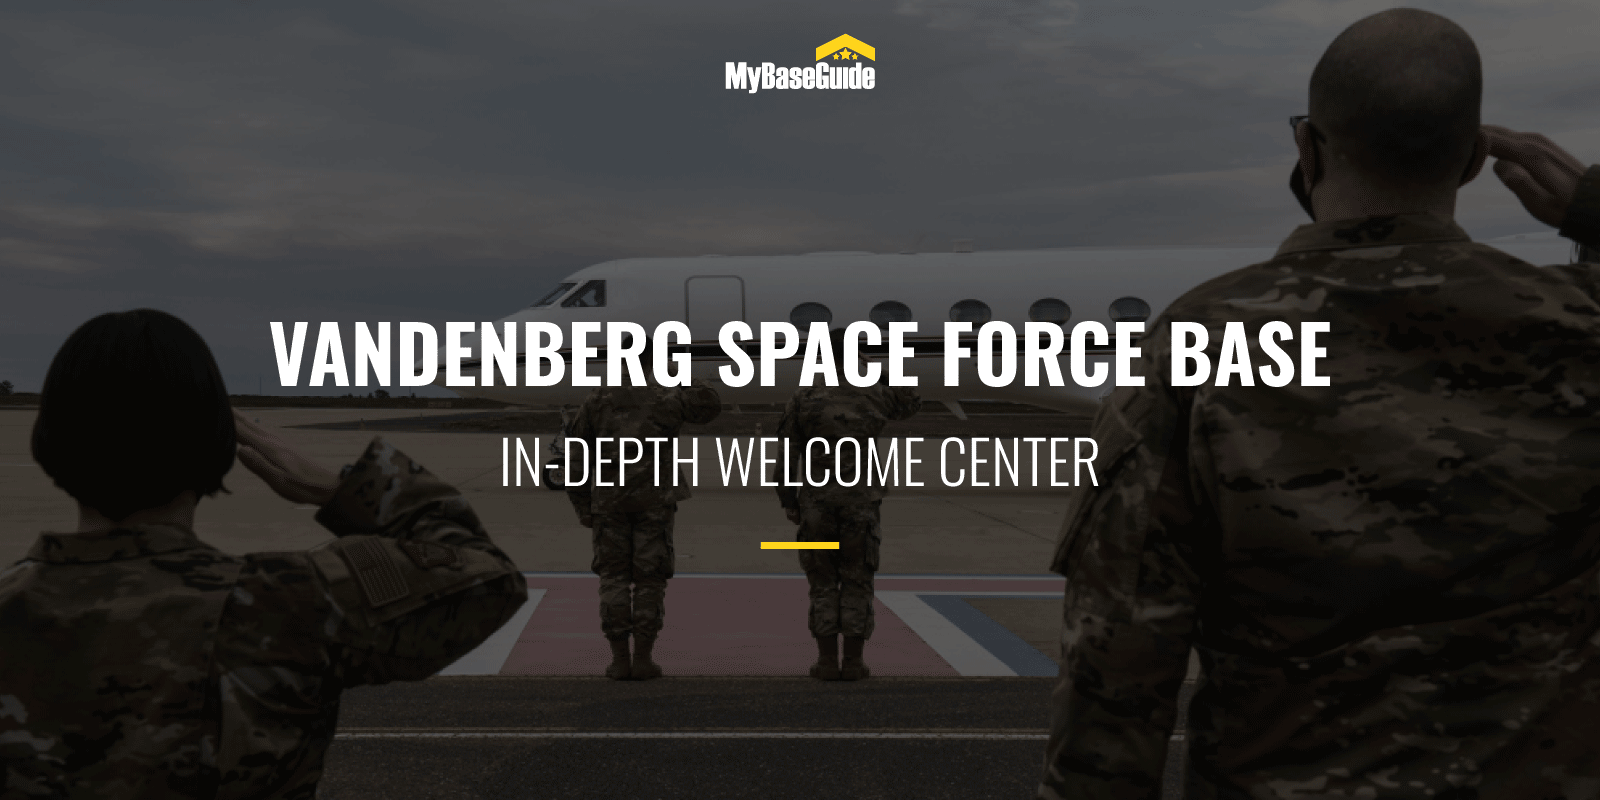 Vandenberg AFB Welcome Center (Now Vandenberg Space Force Base)